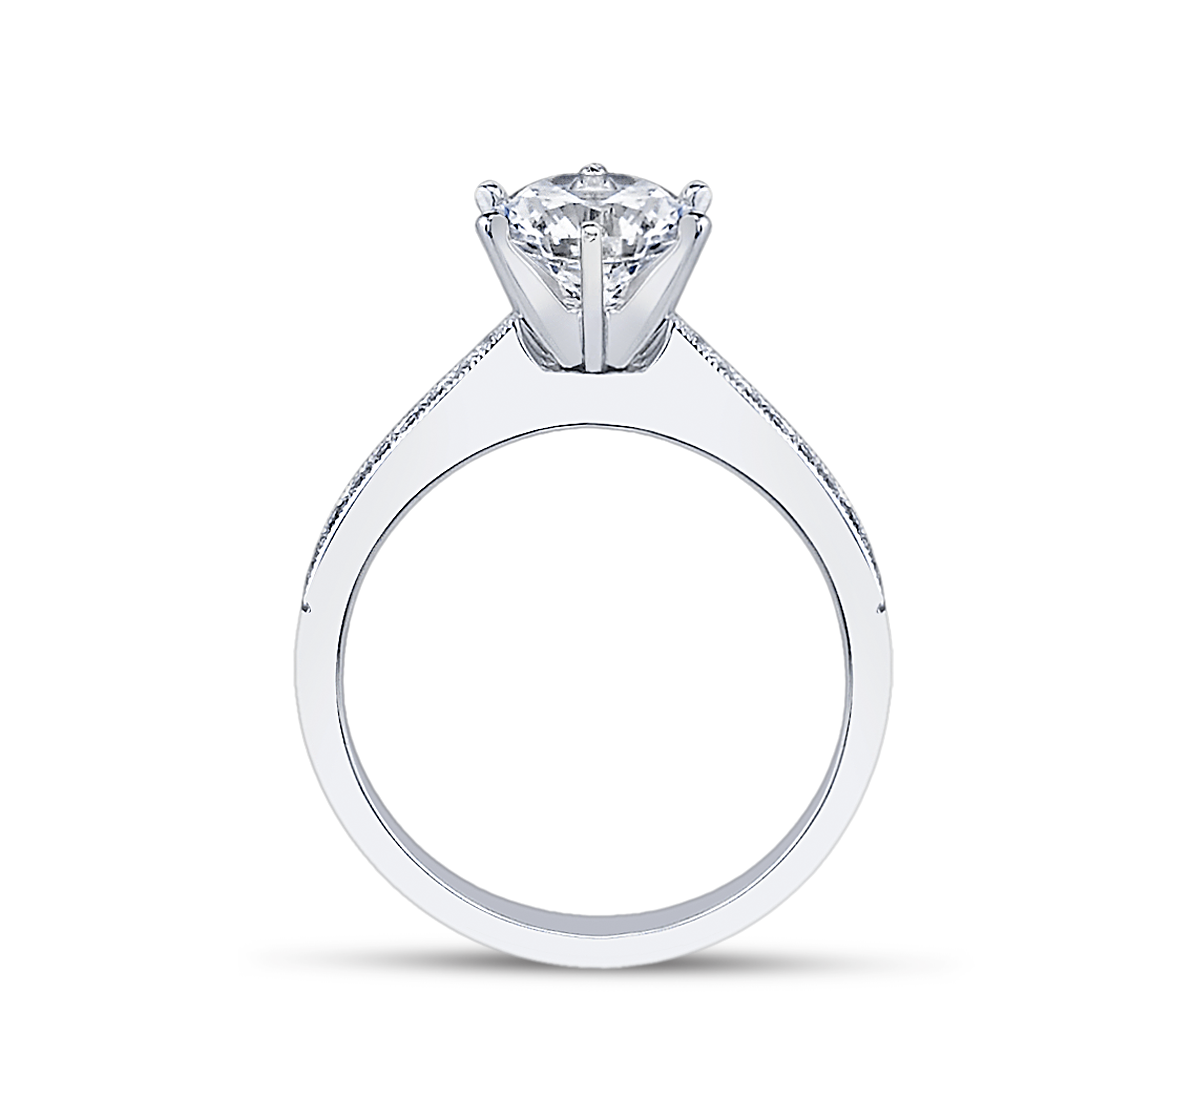 jewellery products trilogy curved engagement in moira shaped jewelry with radiant platinum shoulders fine ring edinburgh patience cut diamond pear